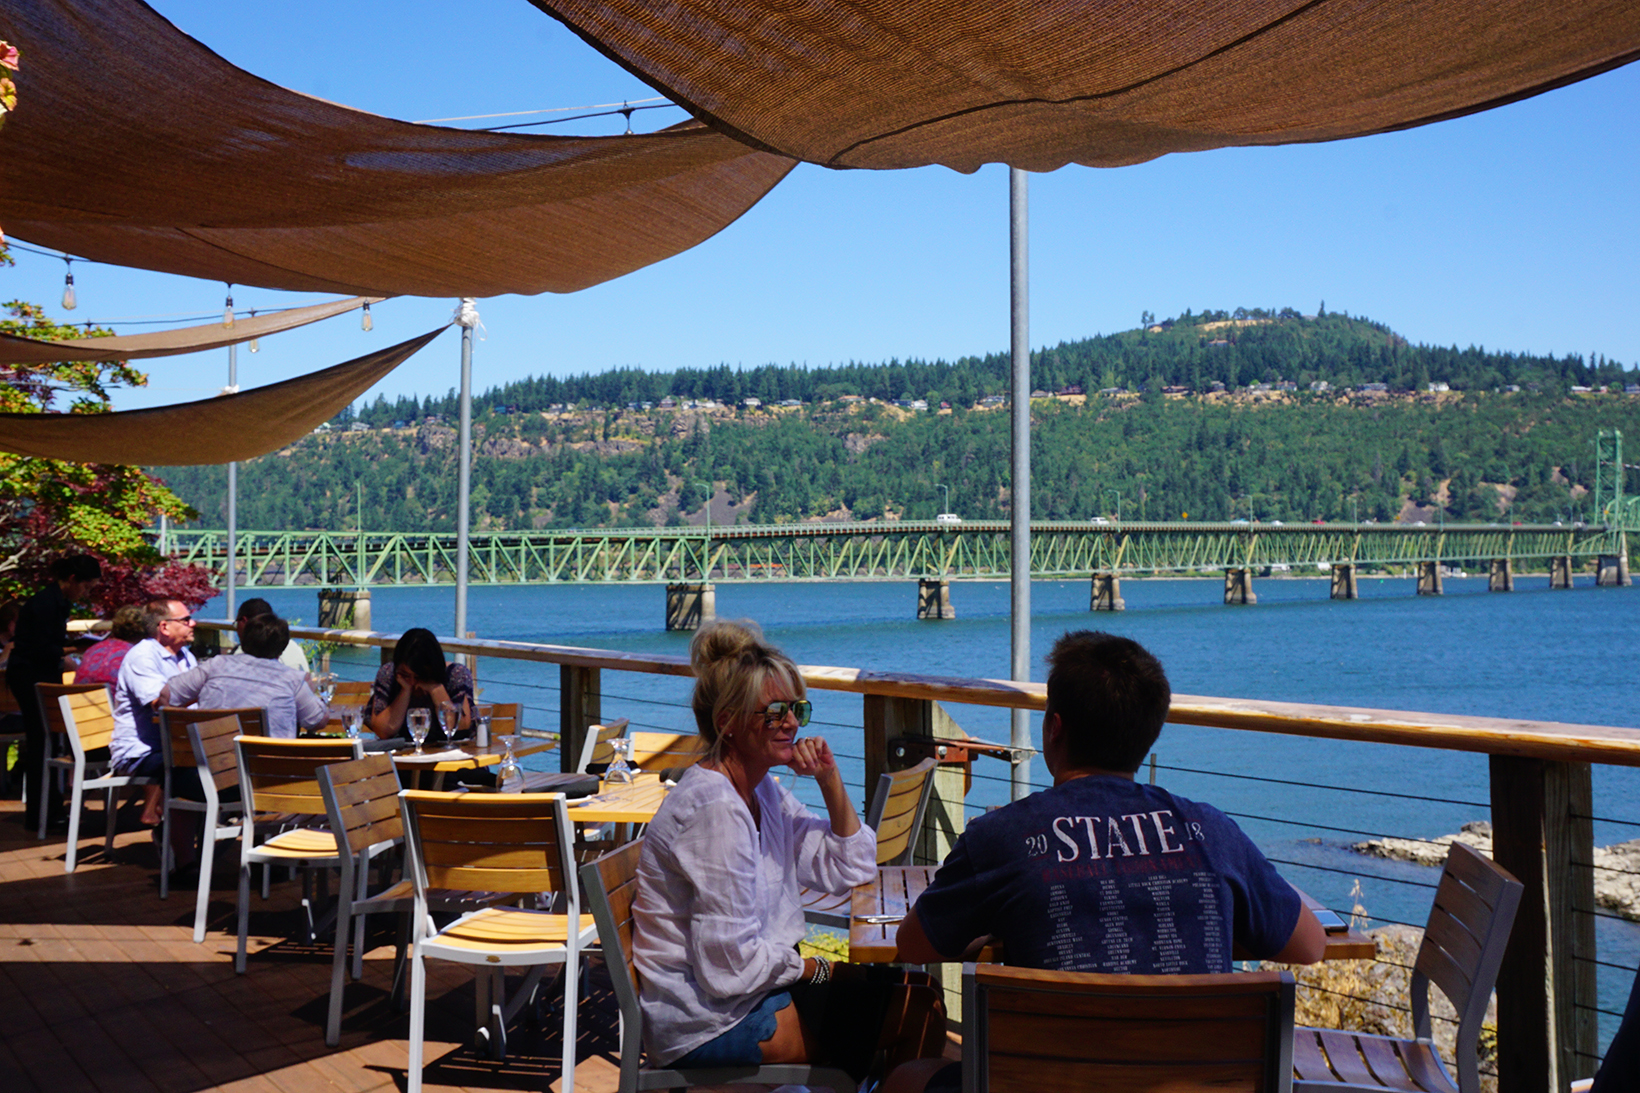 People enjoying a summertime waterfront meal with a view in Hood River